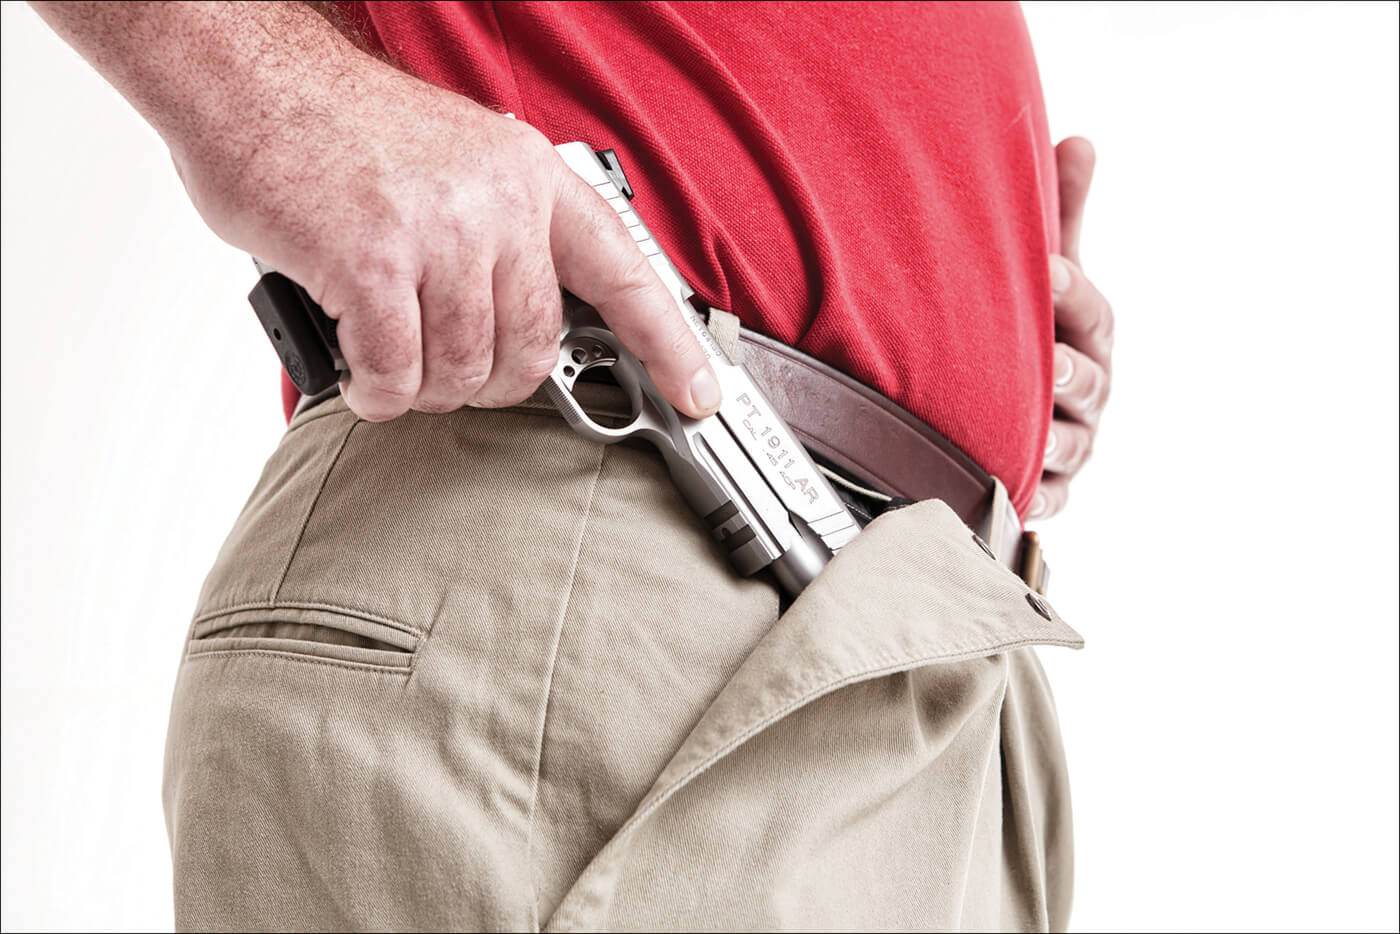 CCW Breakaway pants showing how a 1911 pistol can be concealed in its secret flap